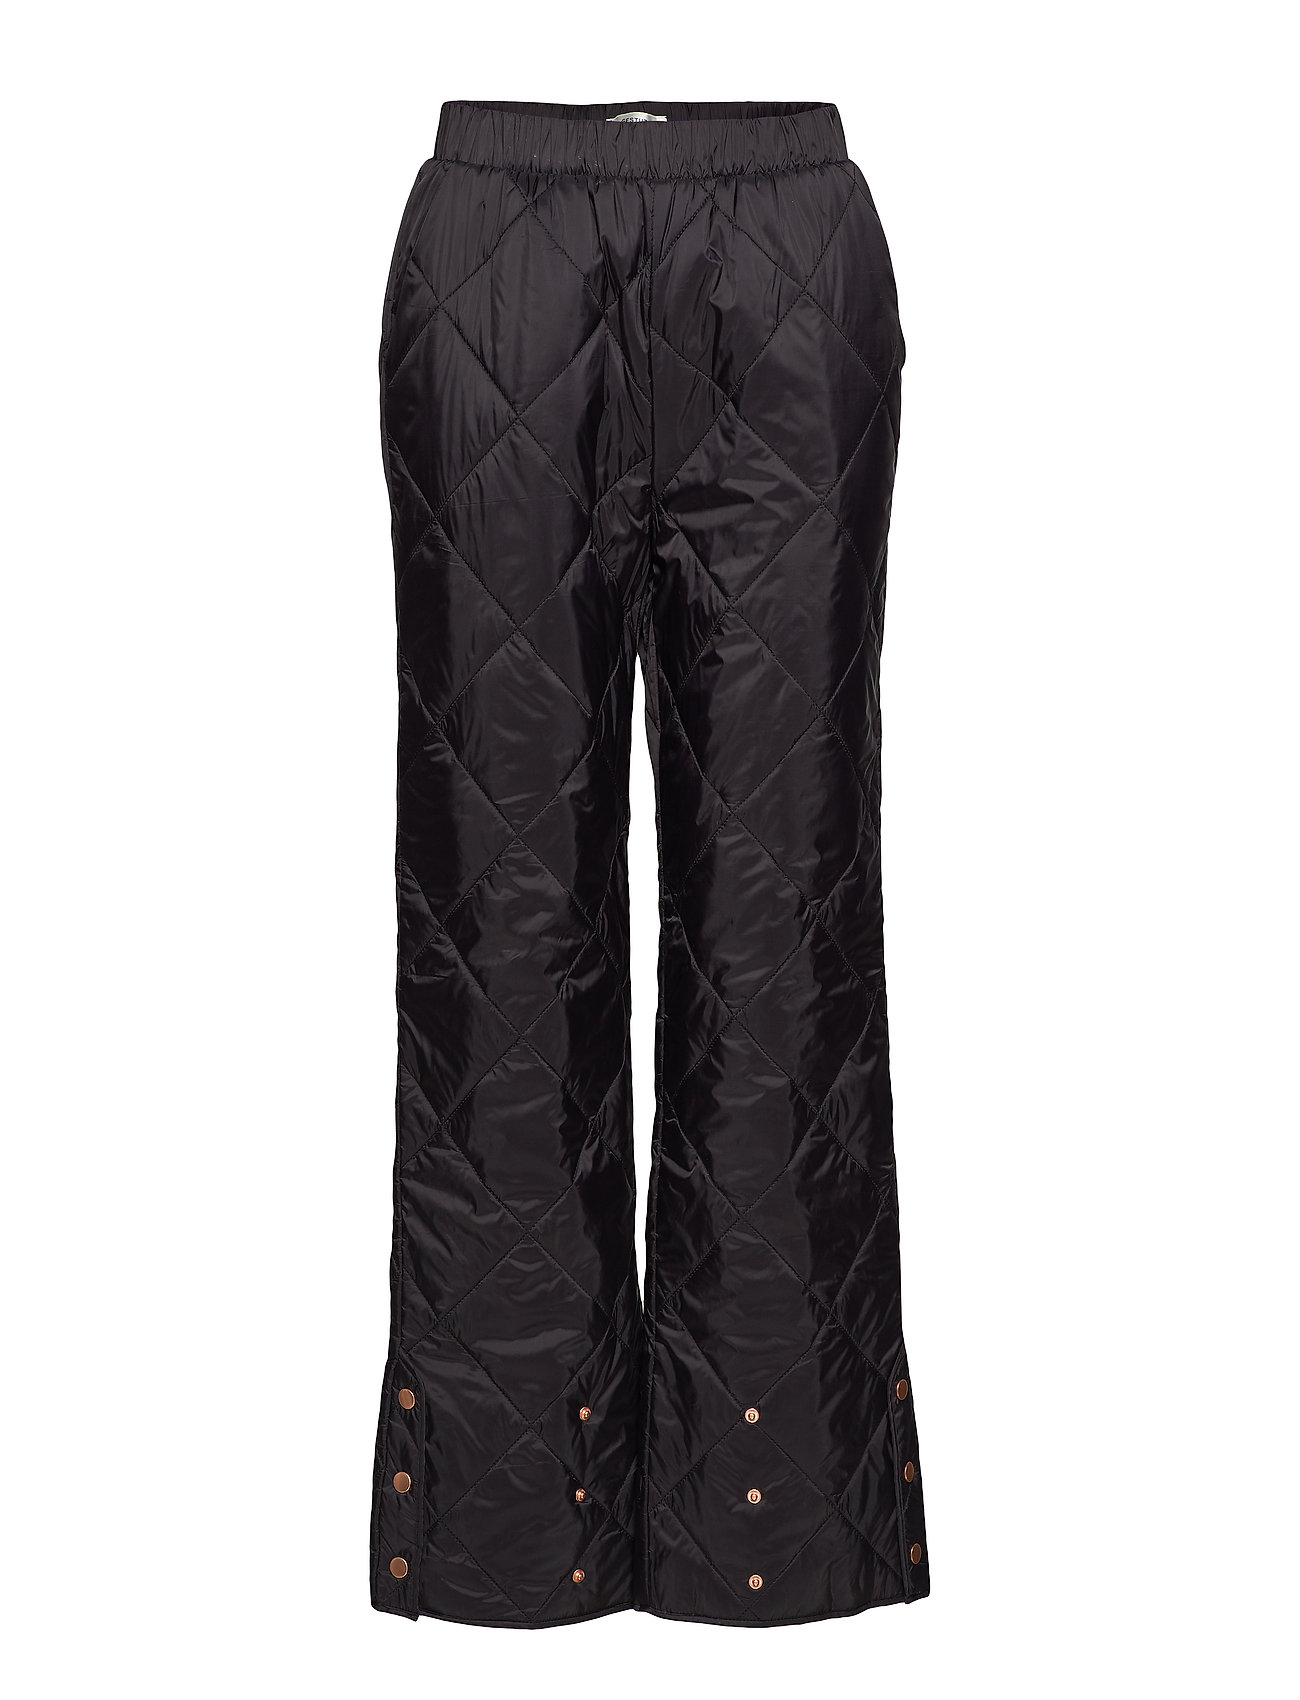 Gestuz Ray pants SO19 - BLACK